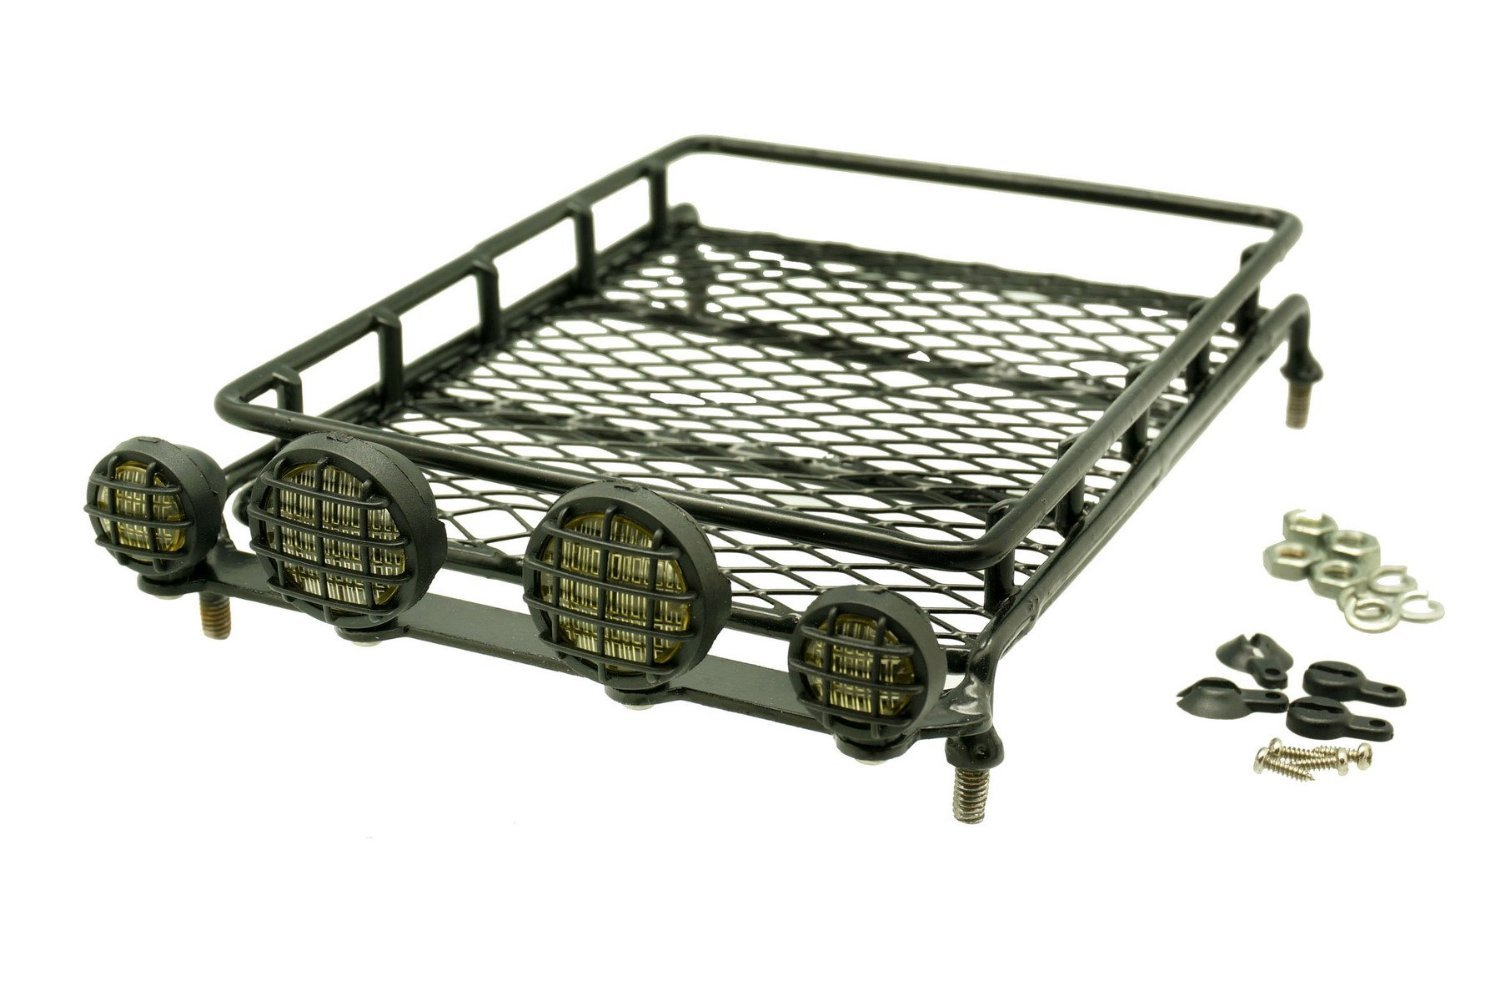 Gadget Place Metal Roof Rack / Luggage Storage Basket with Light Housings for RC Toys